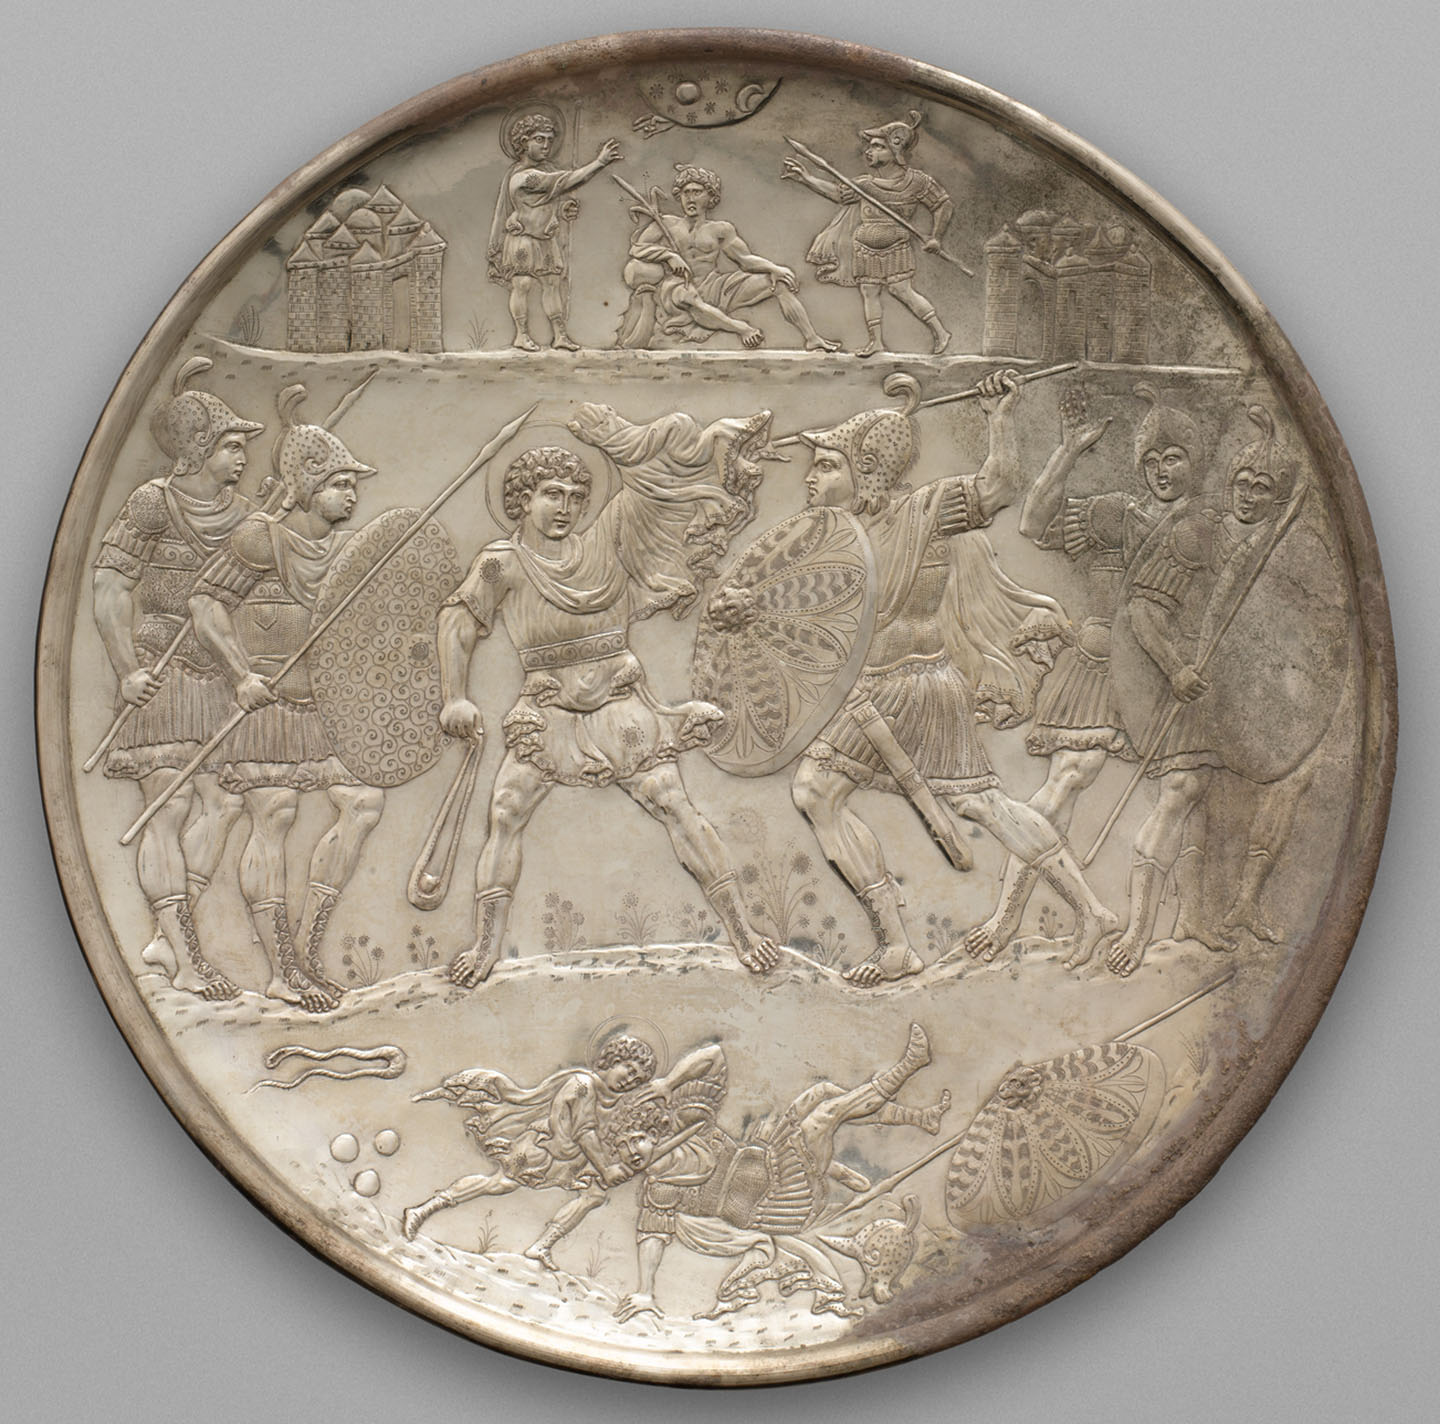 A large silver plate decorated in relief of two armies engaged in battle